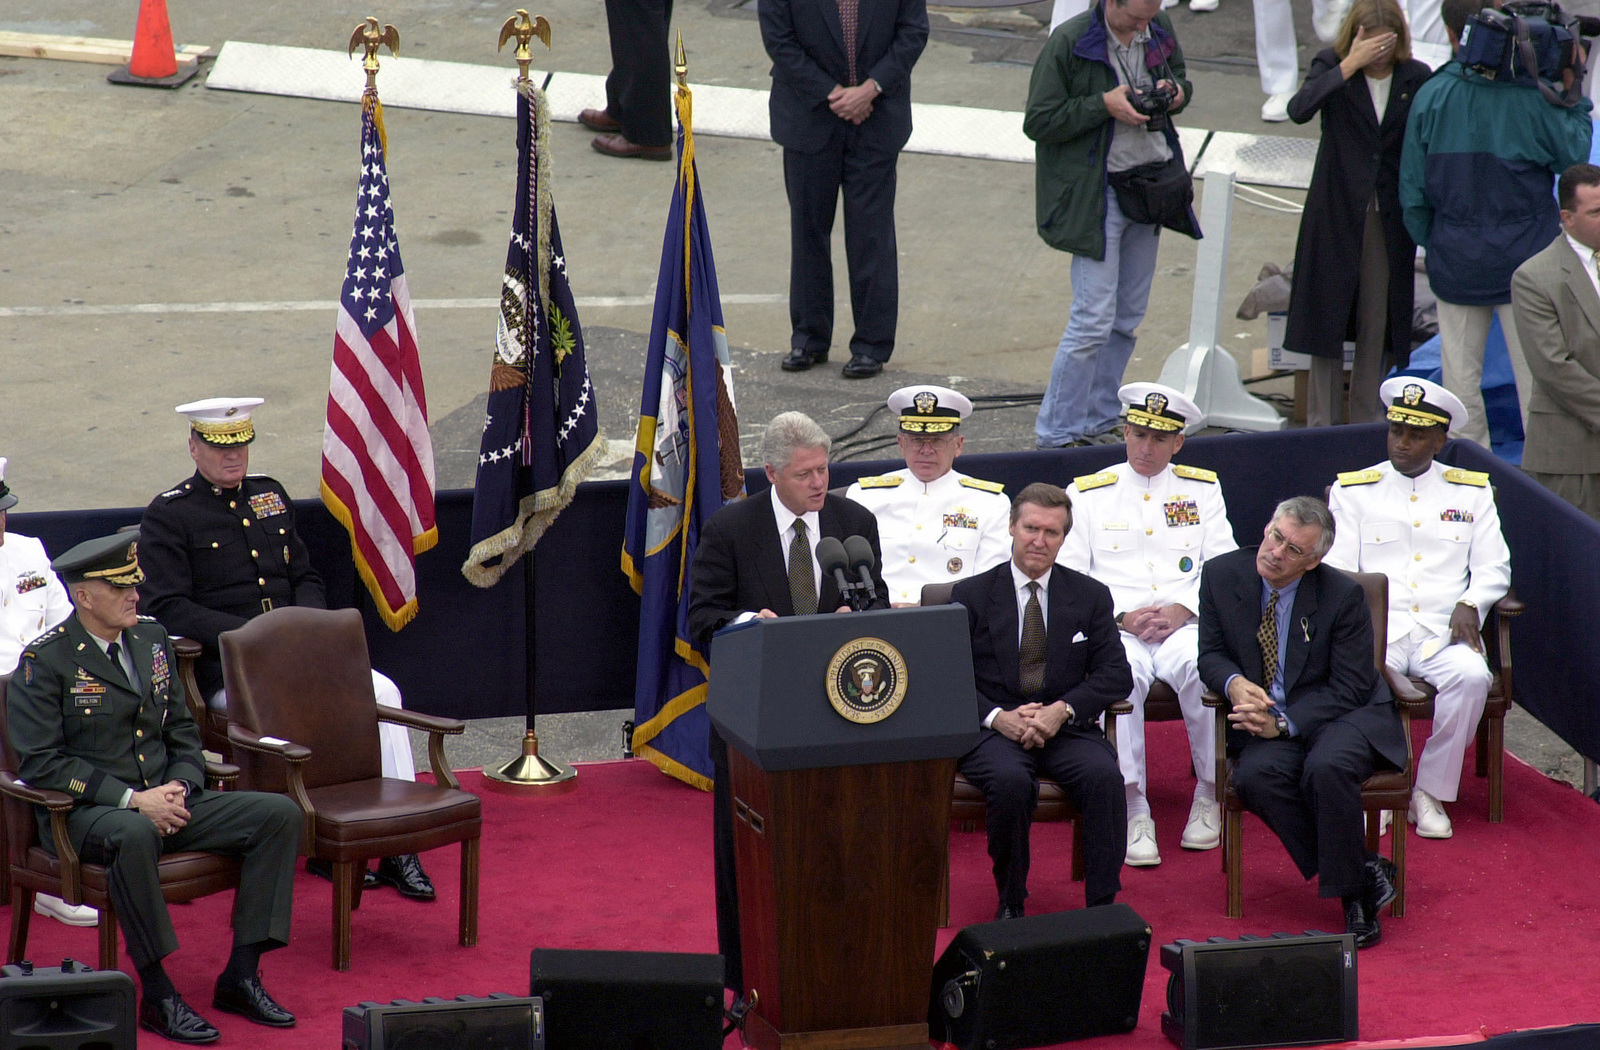 President Clinton and other military leaders address a closed memorial service for families and friends of the sailors killed and those still missing as a result of the terrorist attack on the USS COLE (DDG 67) in the port of Aden, Yemen